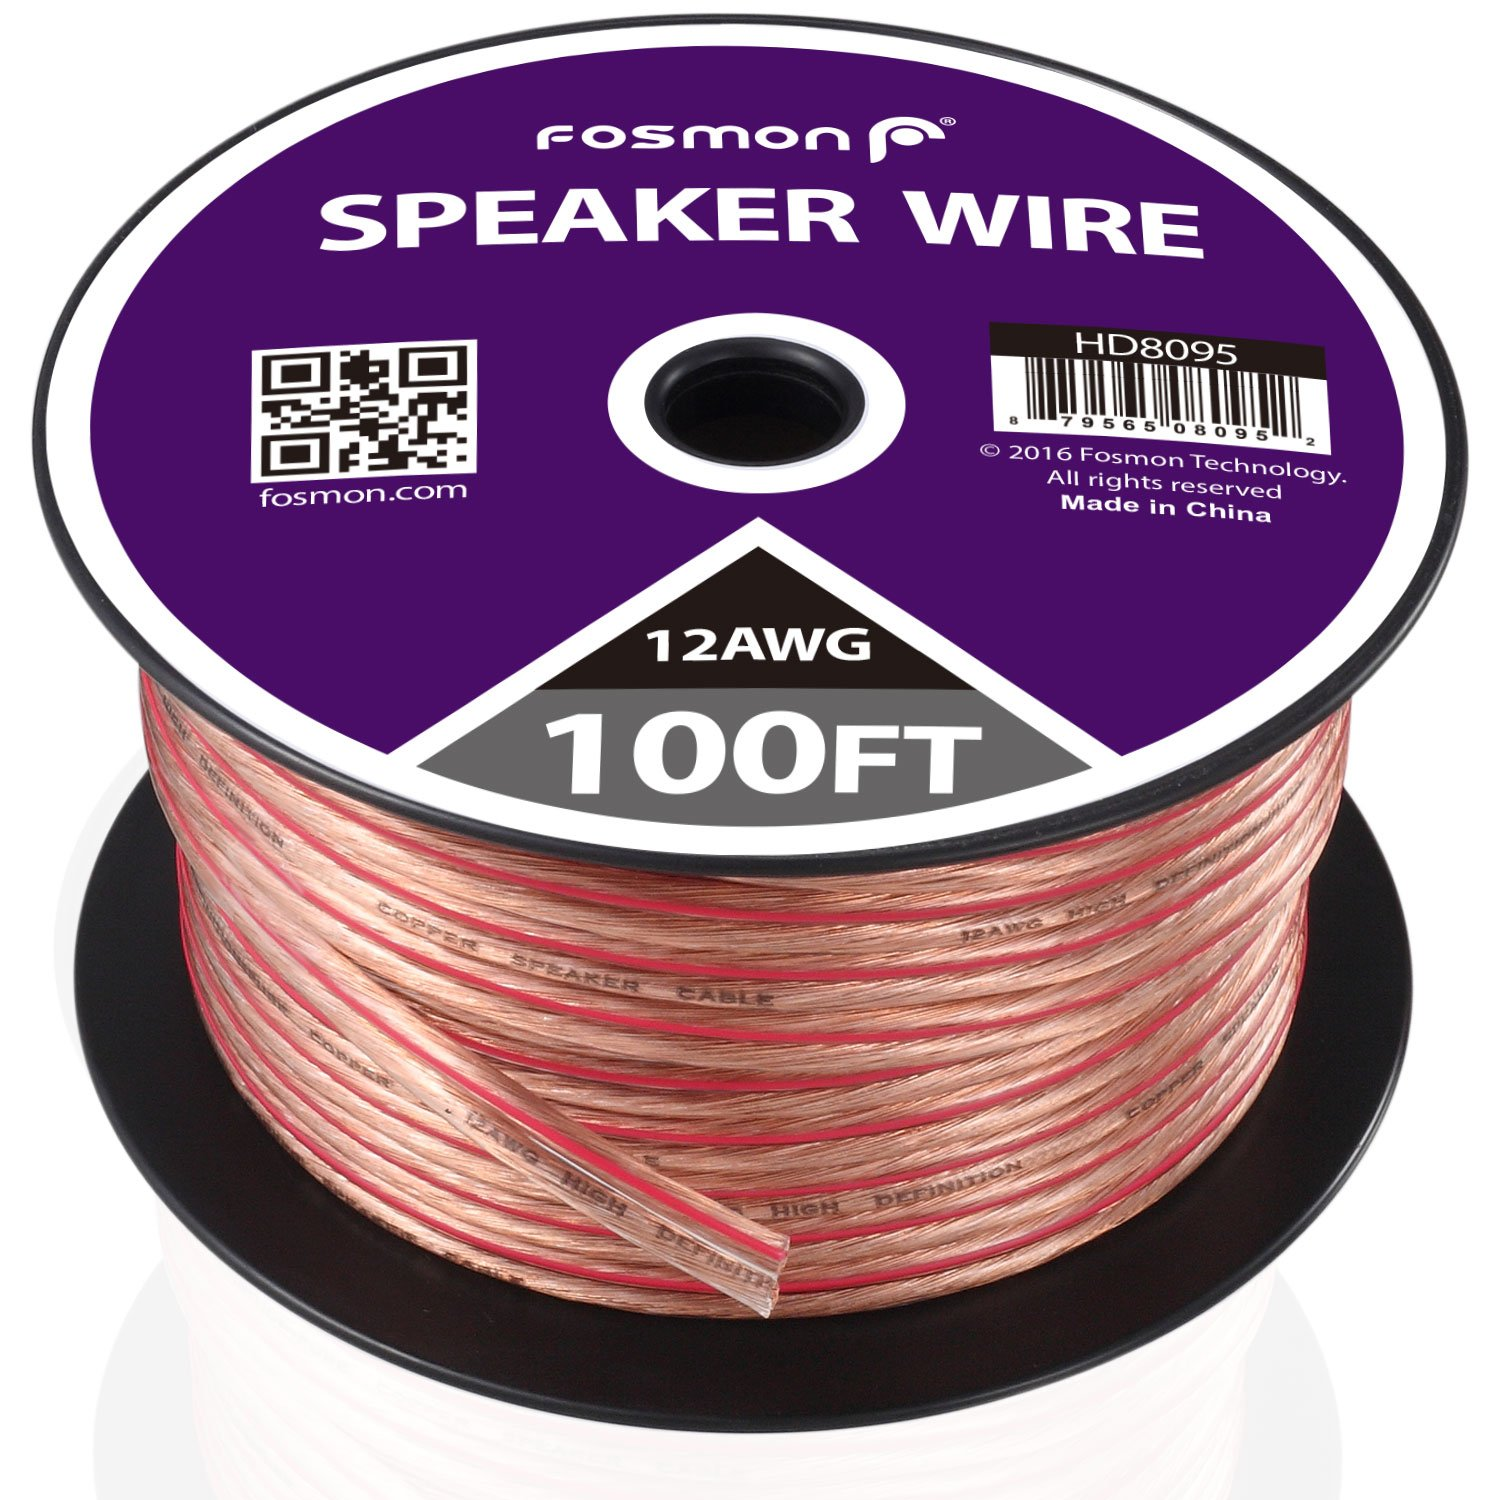 Fosmon Speaker Wire, 14AWG Spooled CCA (Copper Clad Aluminum) Speaker Wire with Red Polarity Mark (50ft / 15m) HD8096